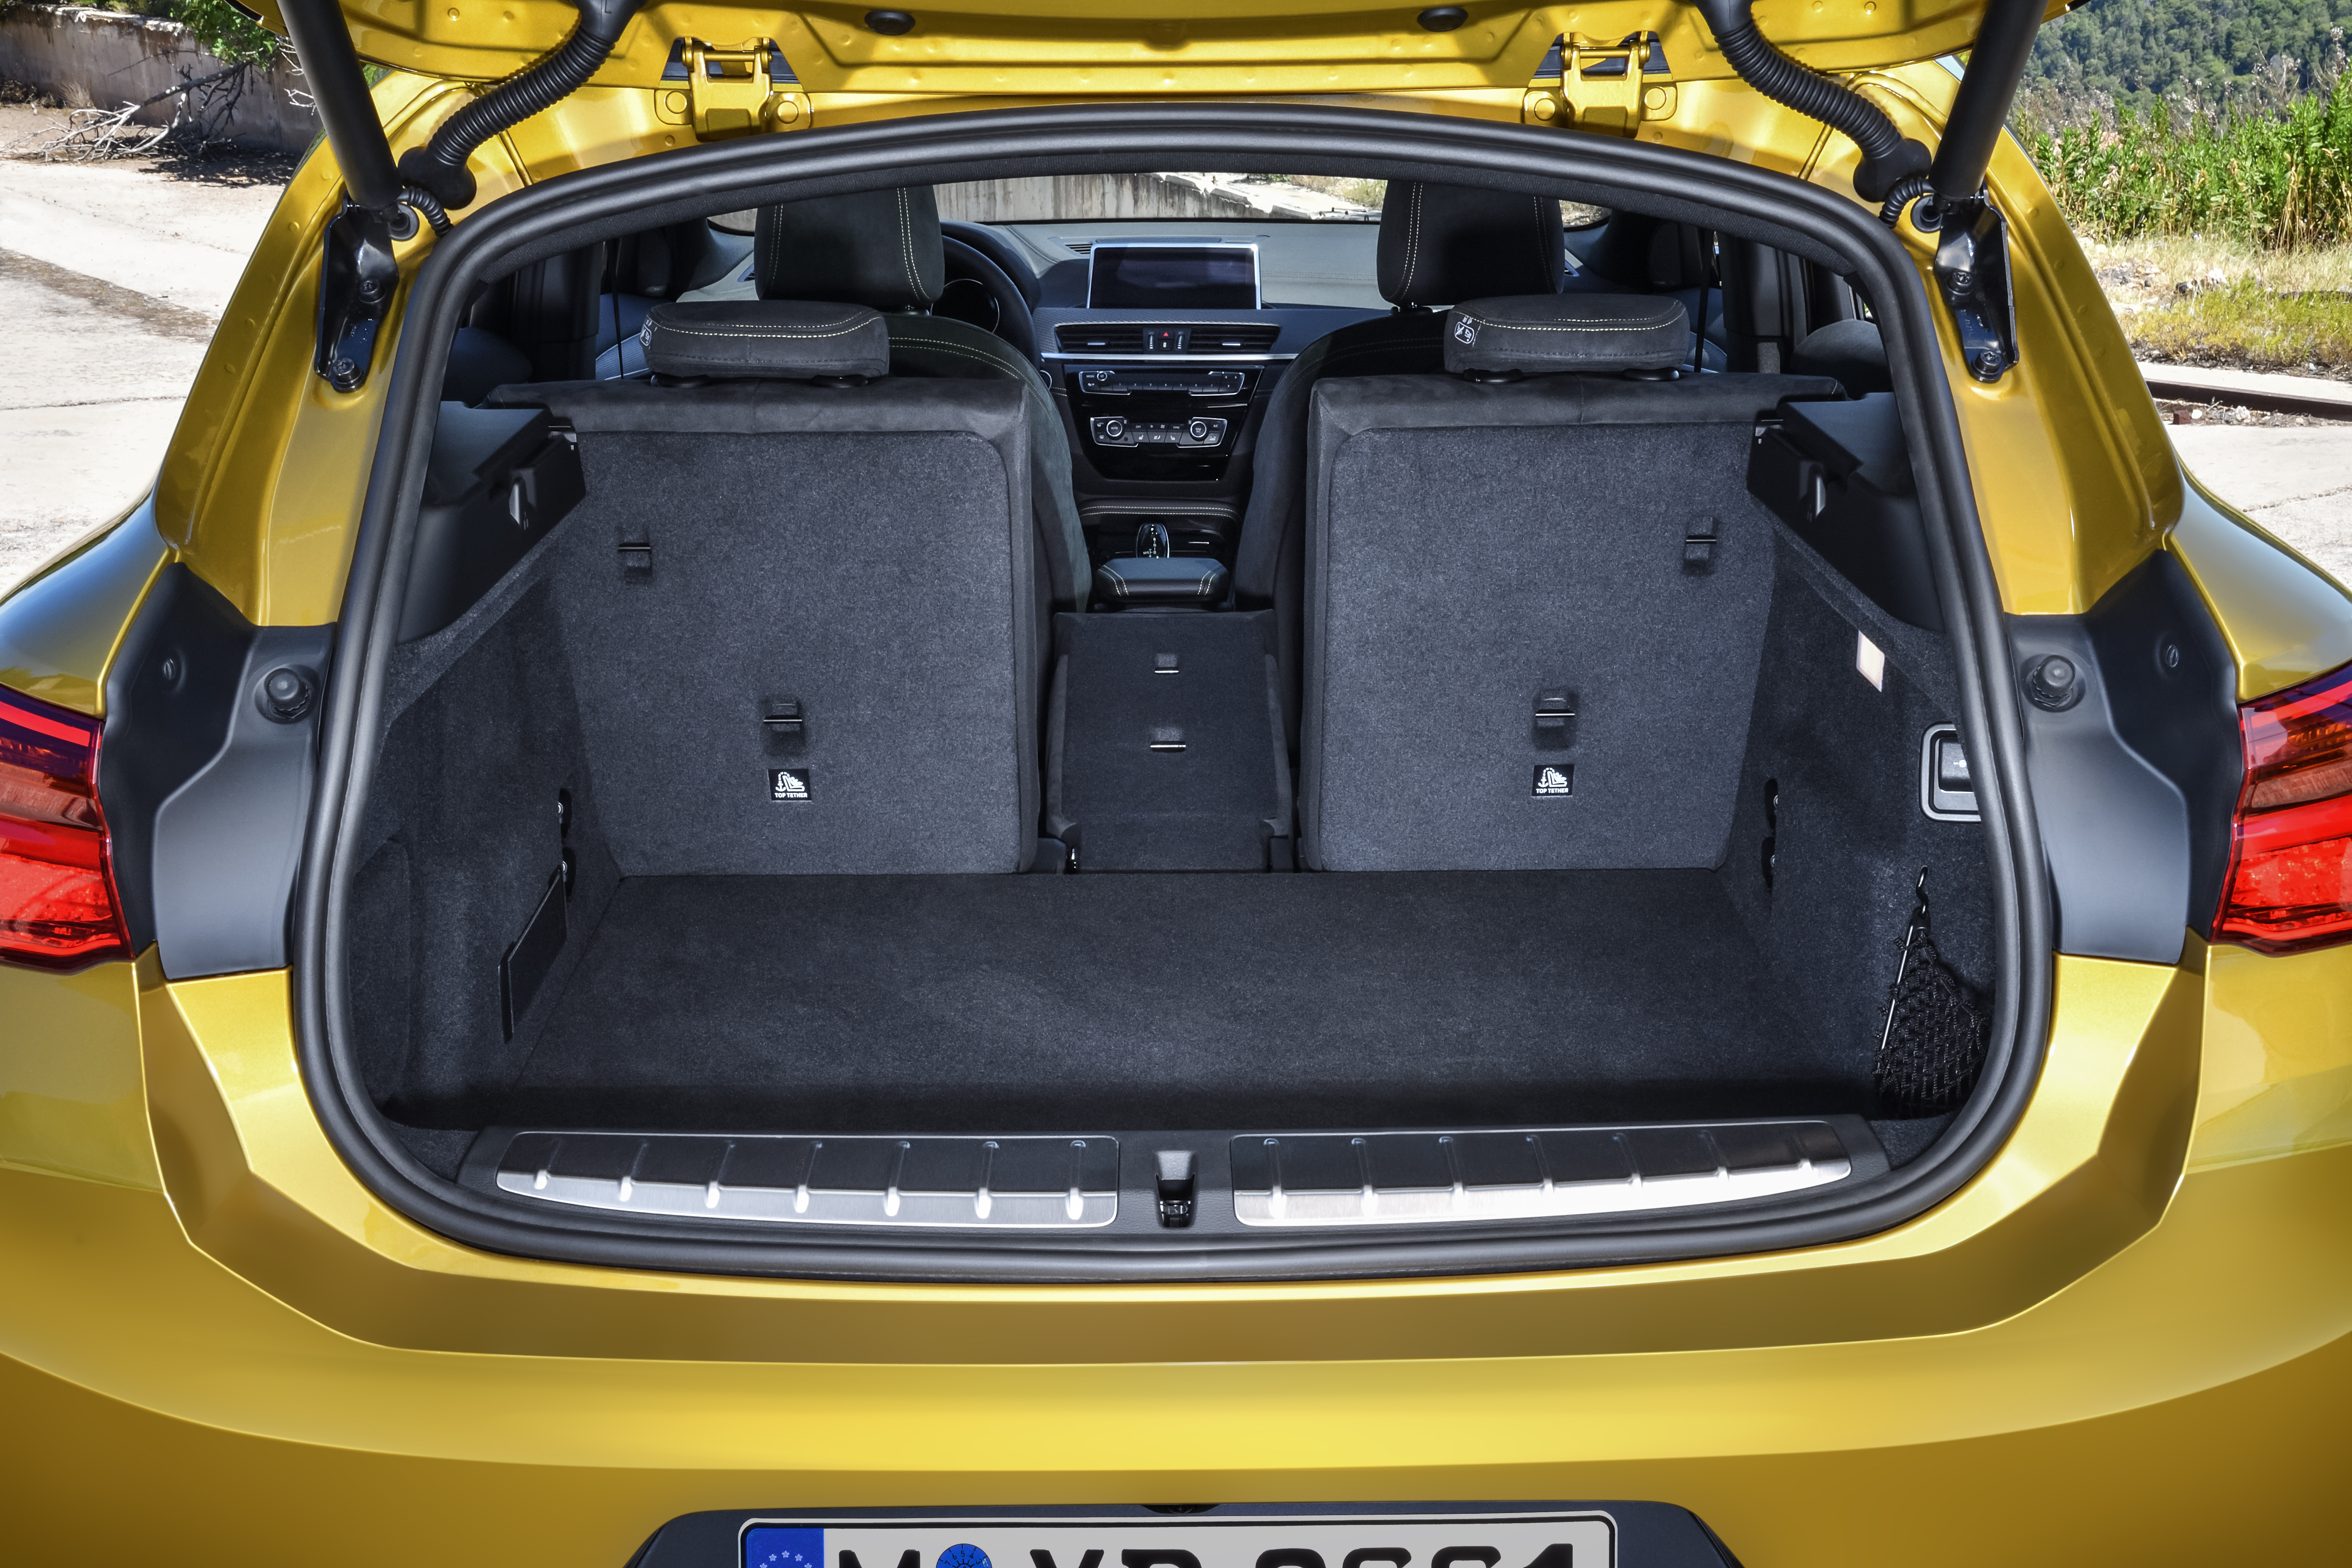 Cargo space in the BMW X2 matches others in the category, but people space is actually pretty generous.